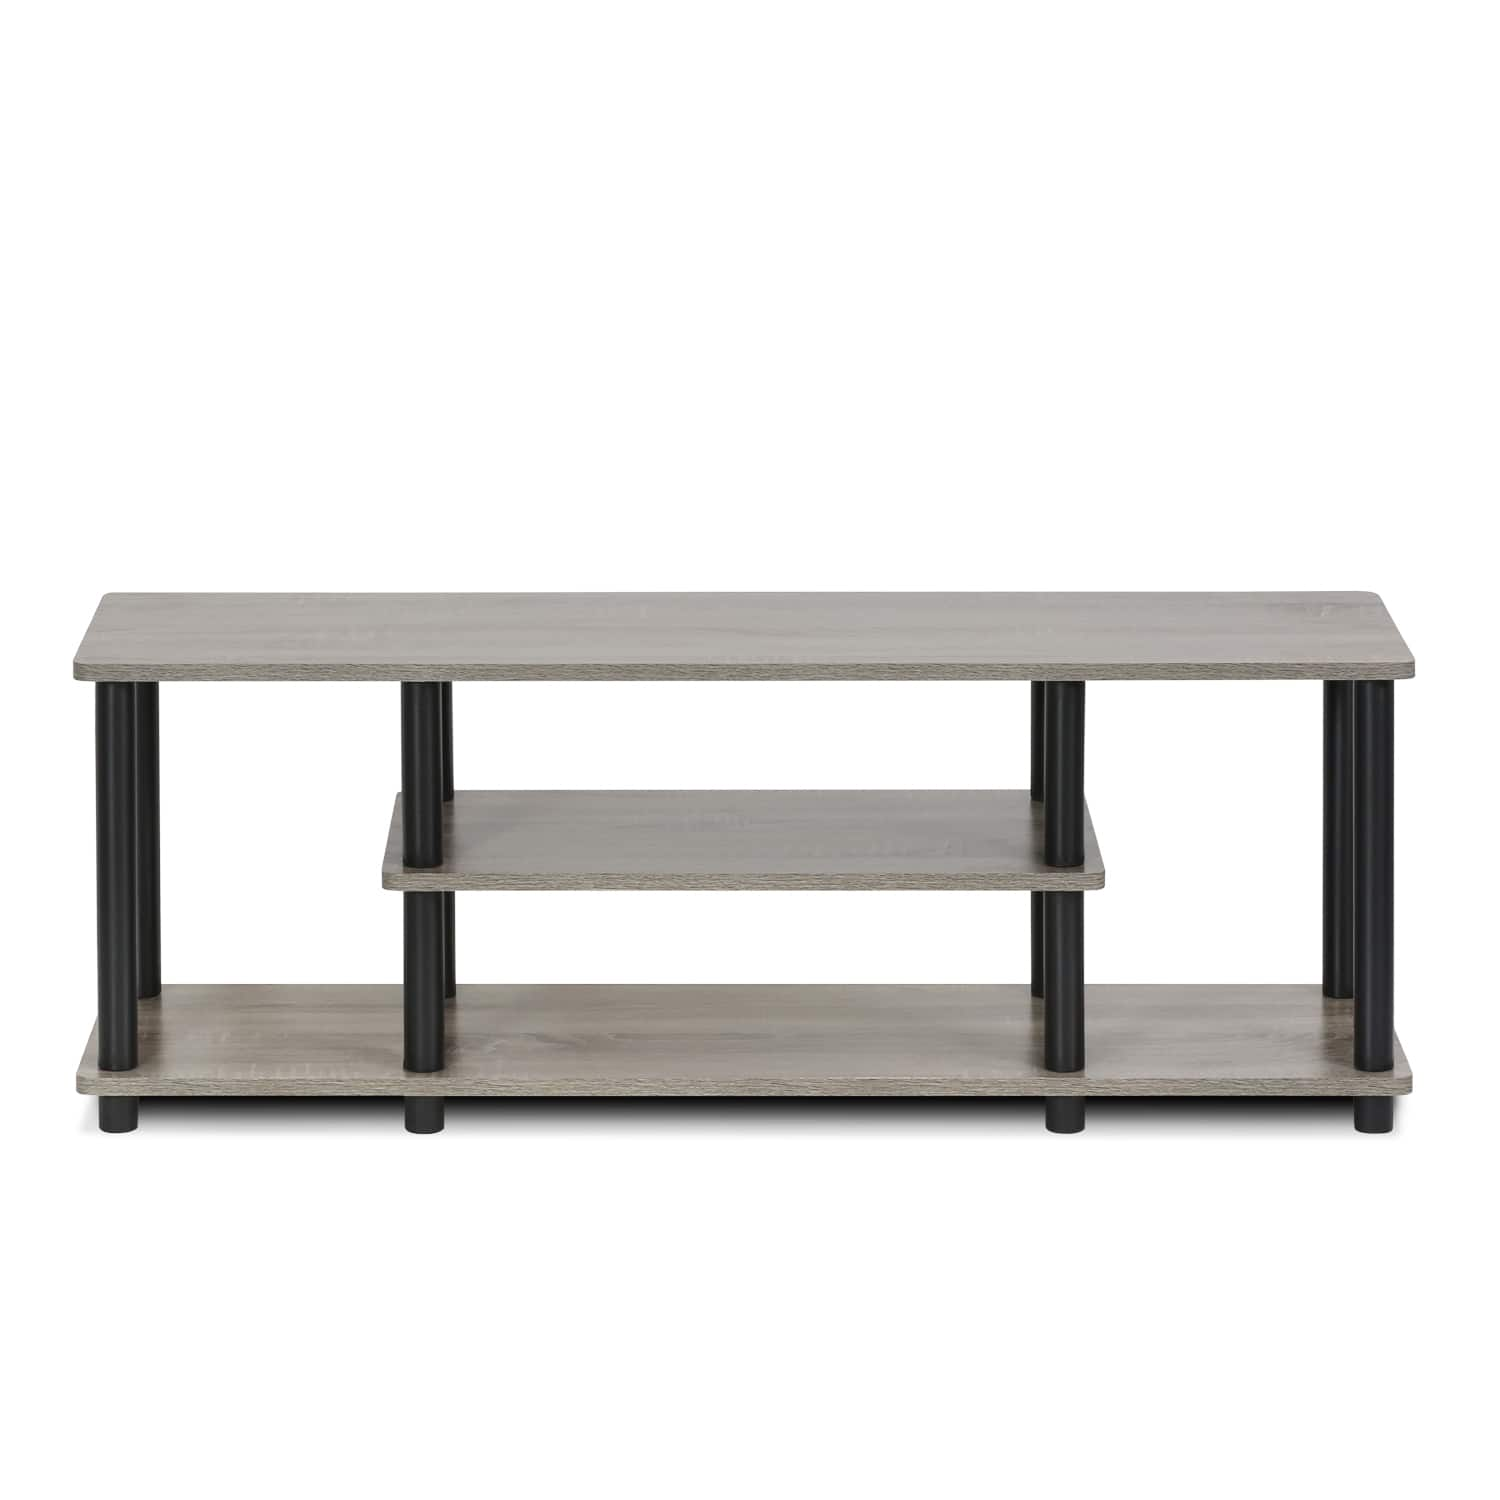 Furinno Turn-N-Tube No Tool 3-Tier Entertainment TV Stands, Multiple Colors [name: finish value: finish-gray] $32